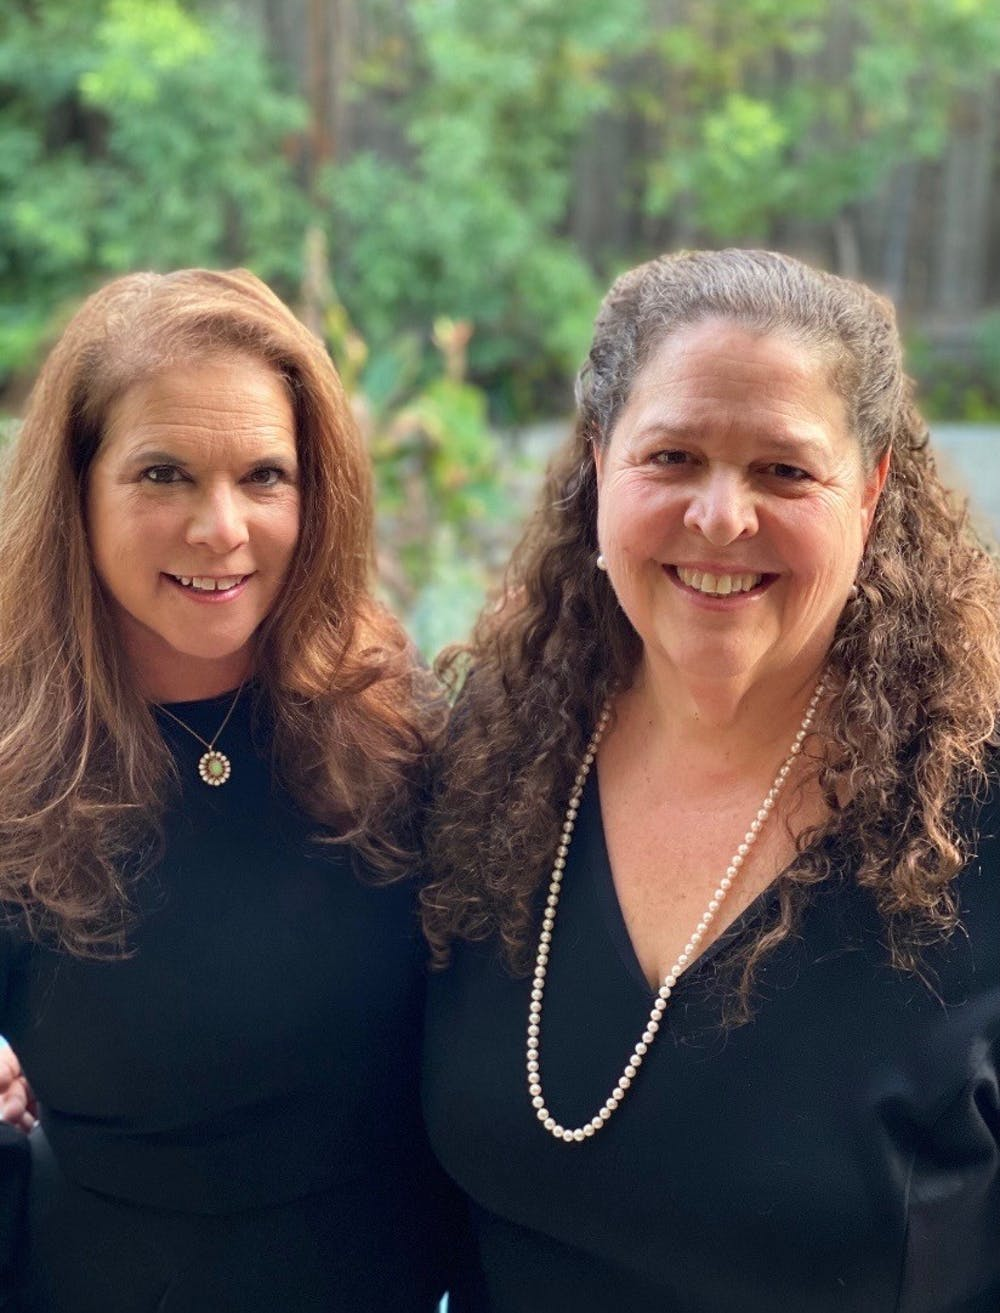 <p>Randi Emerson (left) and Carol Marshall (right), the founders of FIlmFest 919, a film festival based in Chapel Hill, North Carolina.&nbsp;Photo courtesy of Emerson and Marshall.</p>